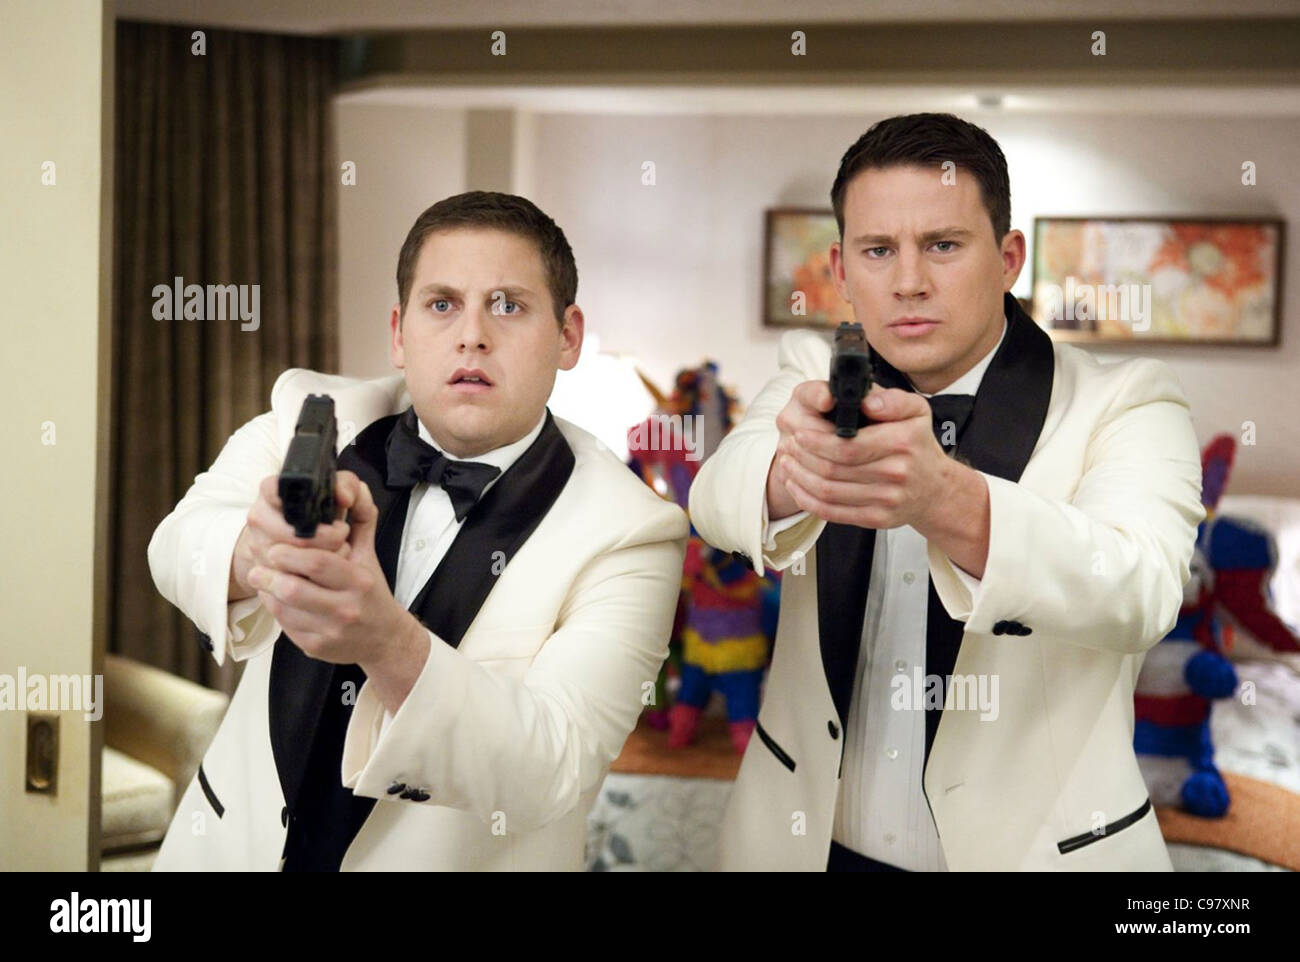 21 JUMP STREET 2012  Columbia/MGM film with Channing Tatum at left and Jonah Hill - Stock Image